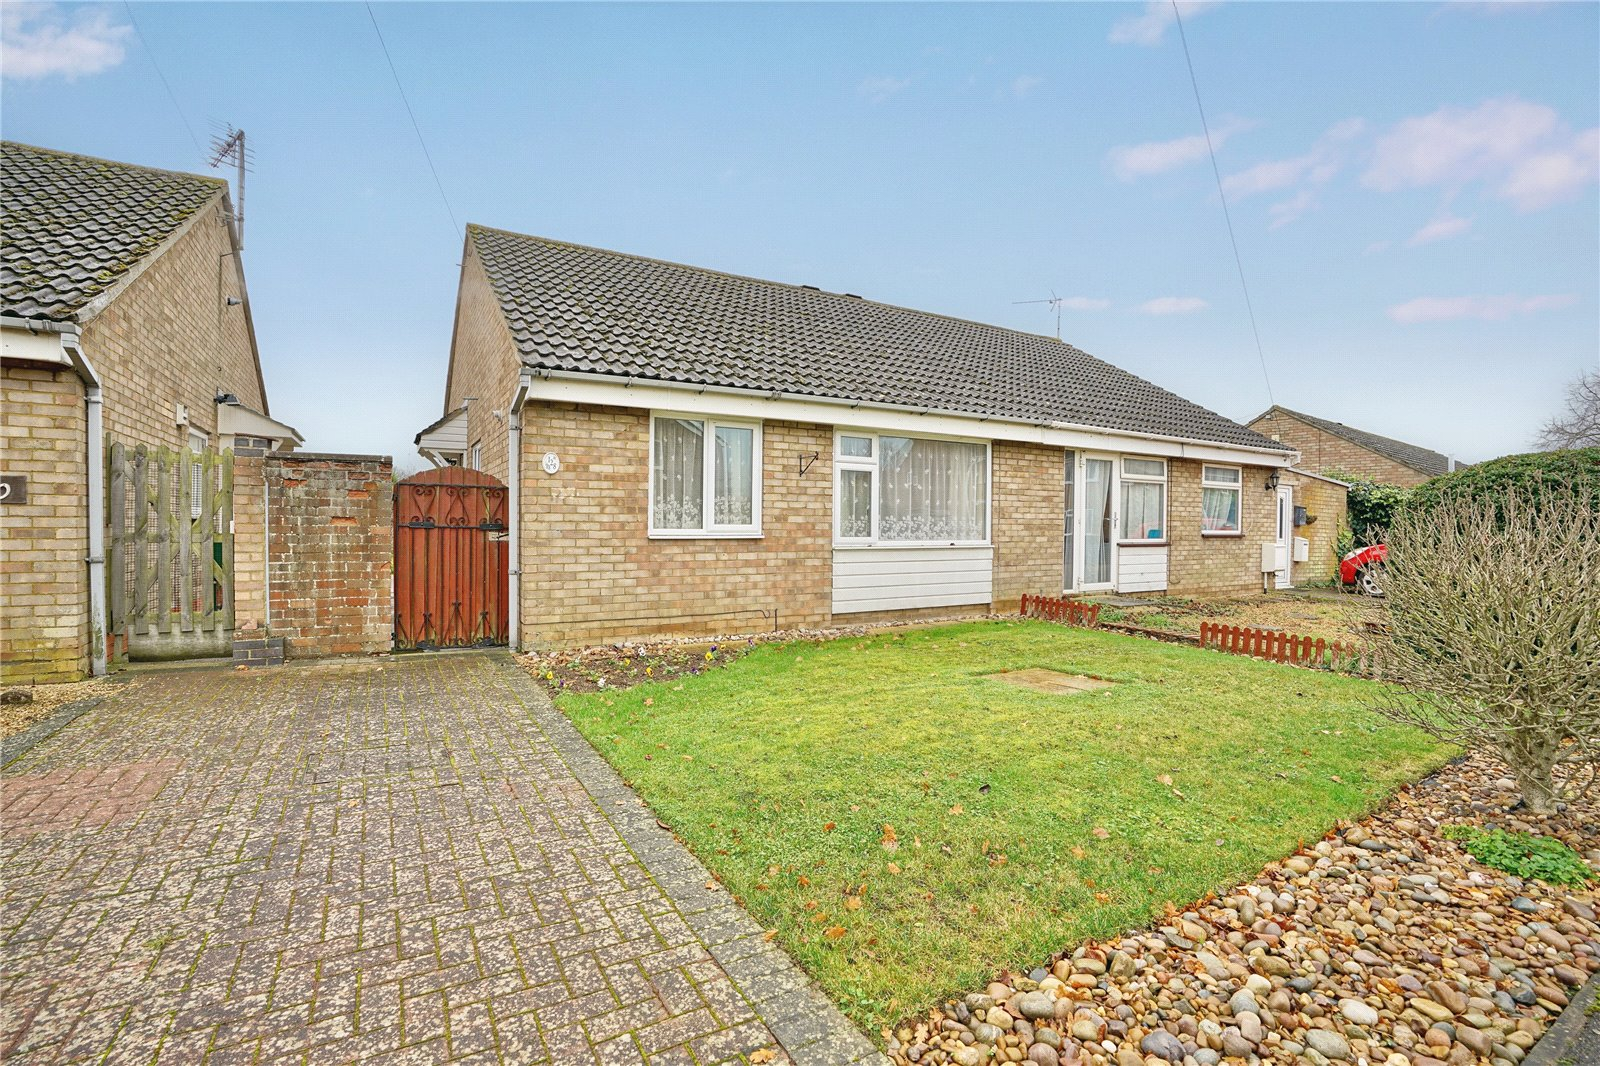 2 bed bungalow for sale in Brampton, PE28 4UA  - Property Image 1